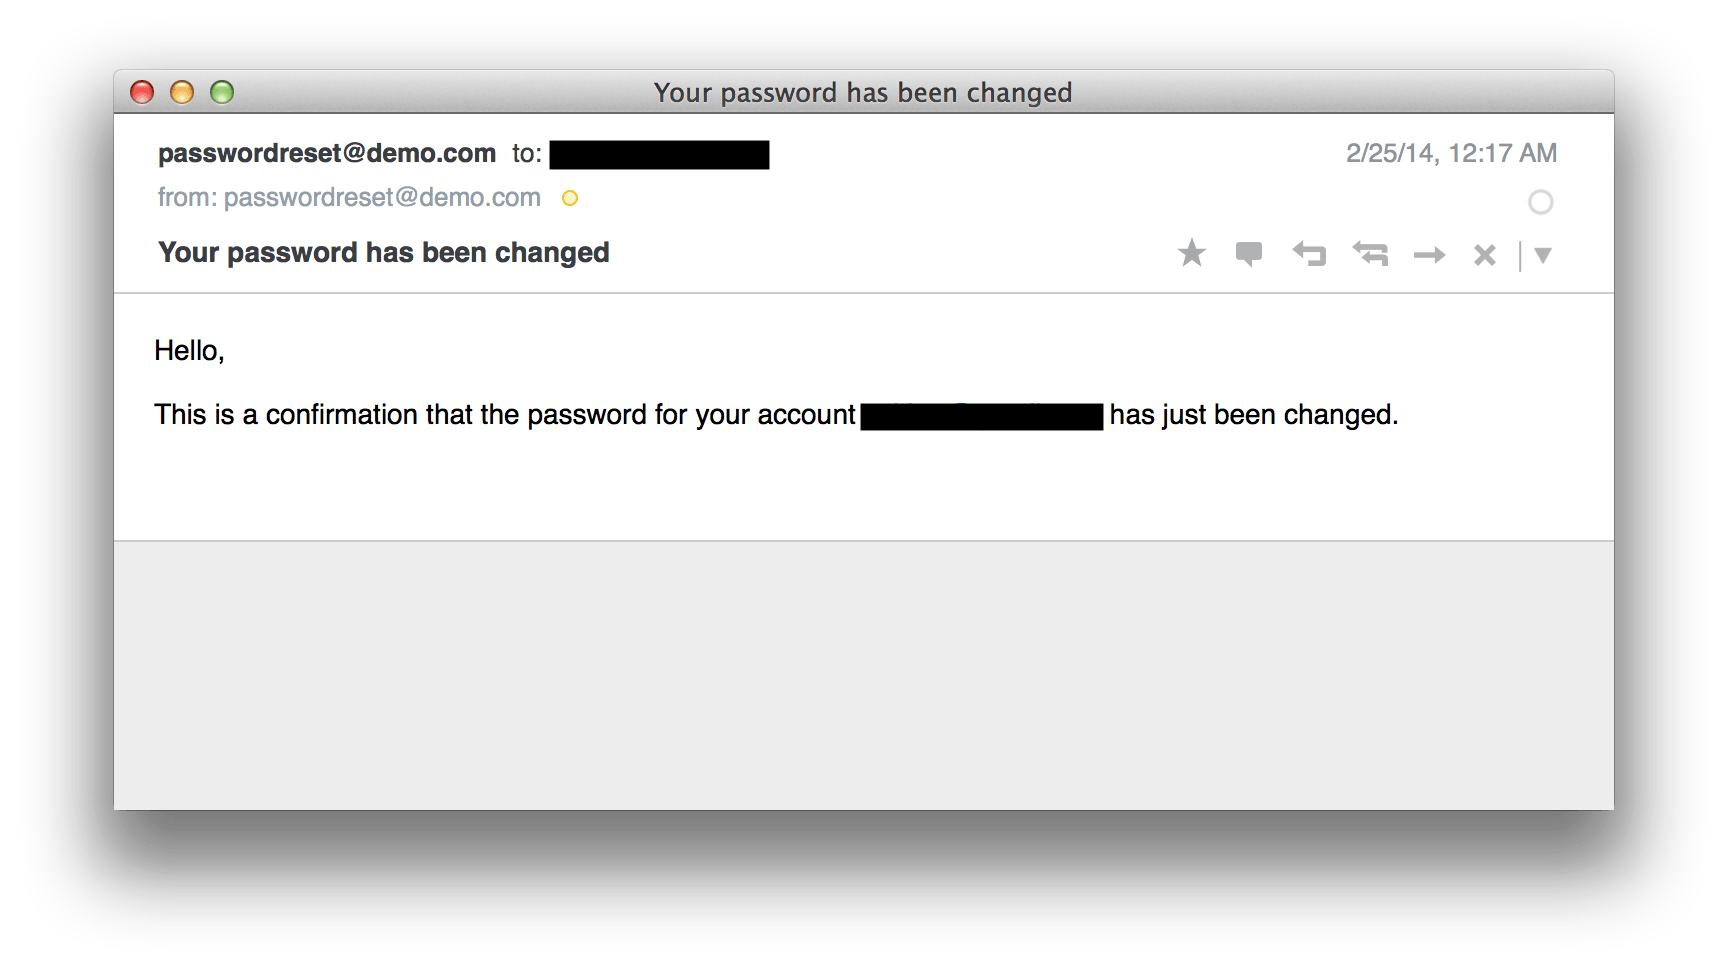 Change password email template images professional for Password change email template